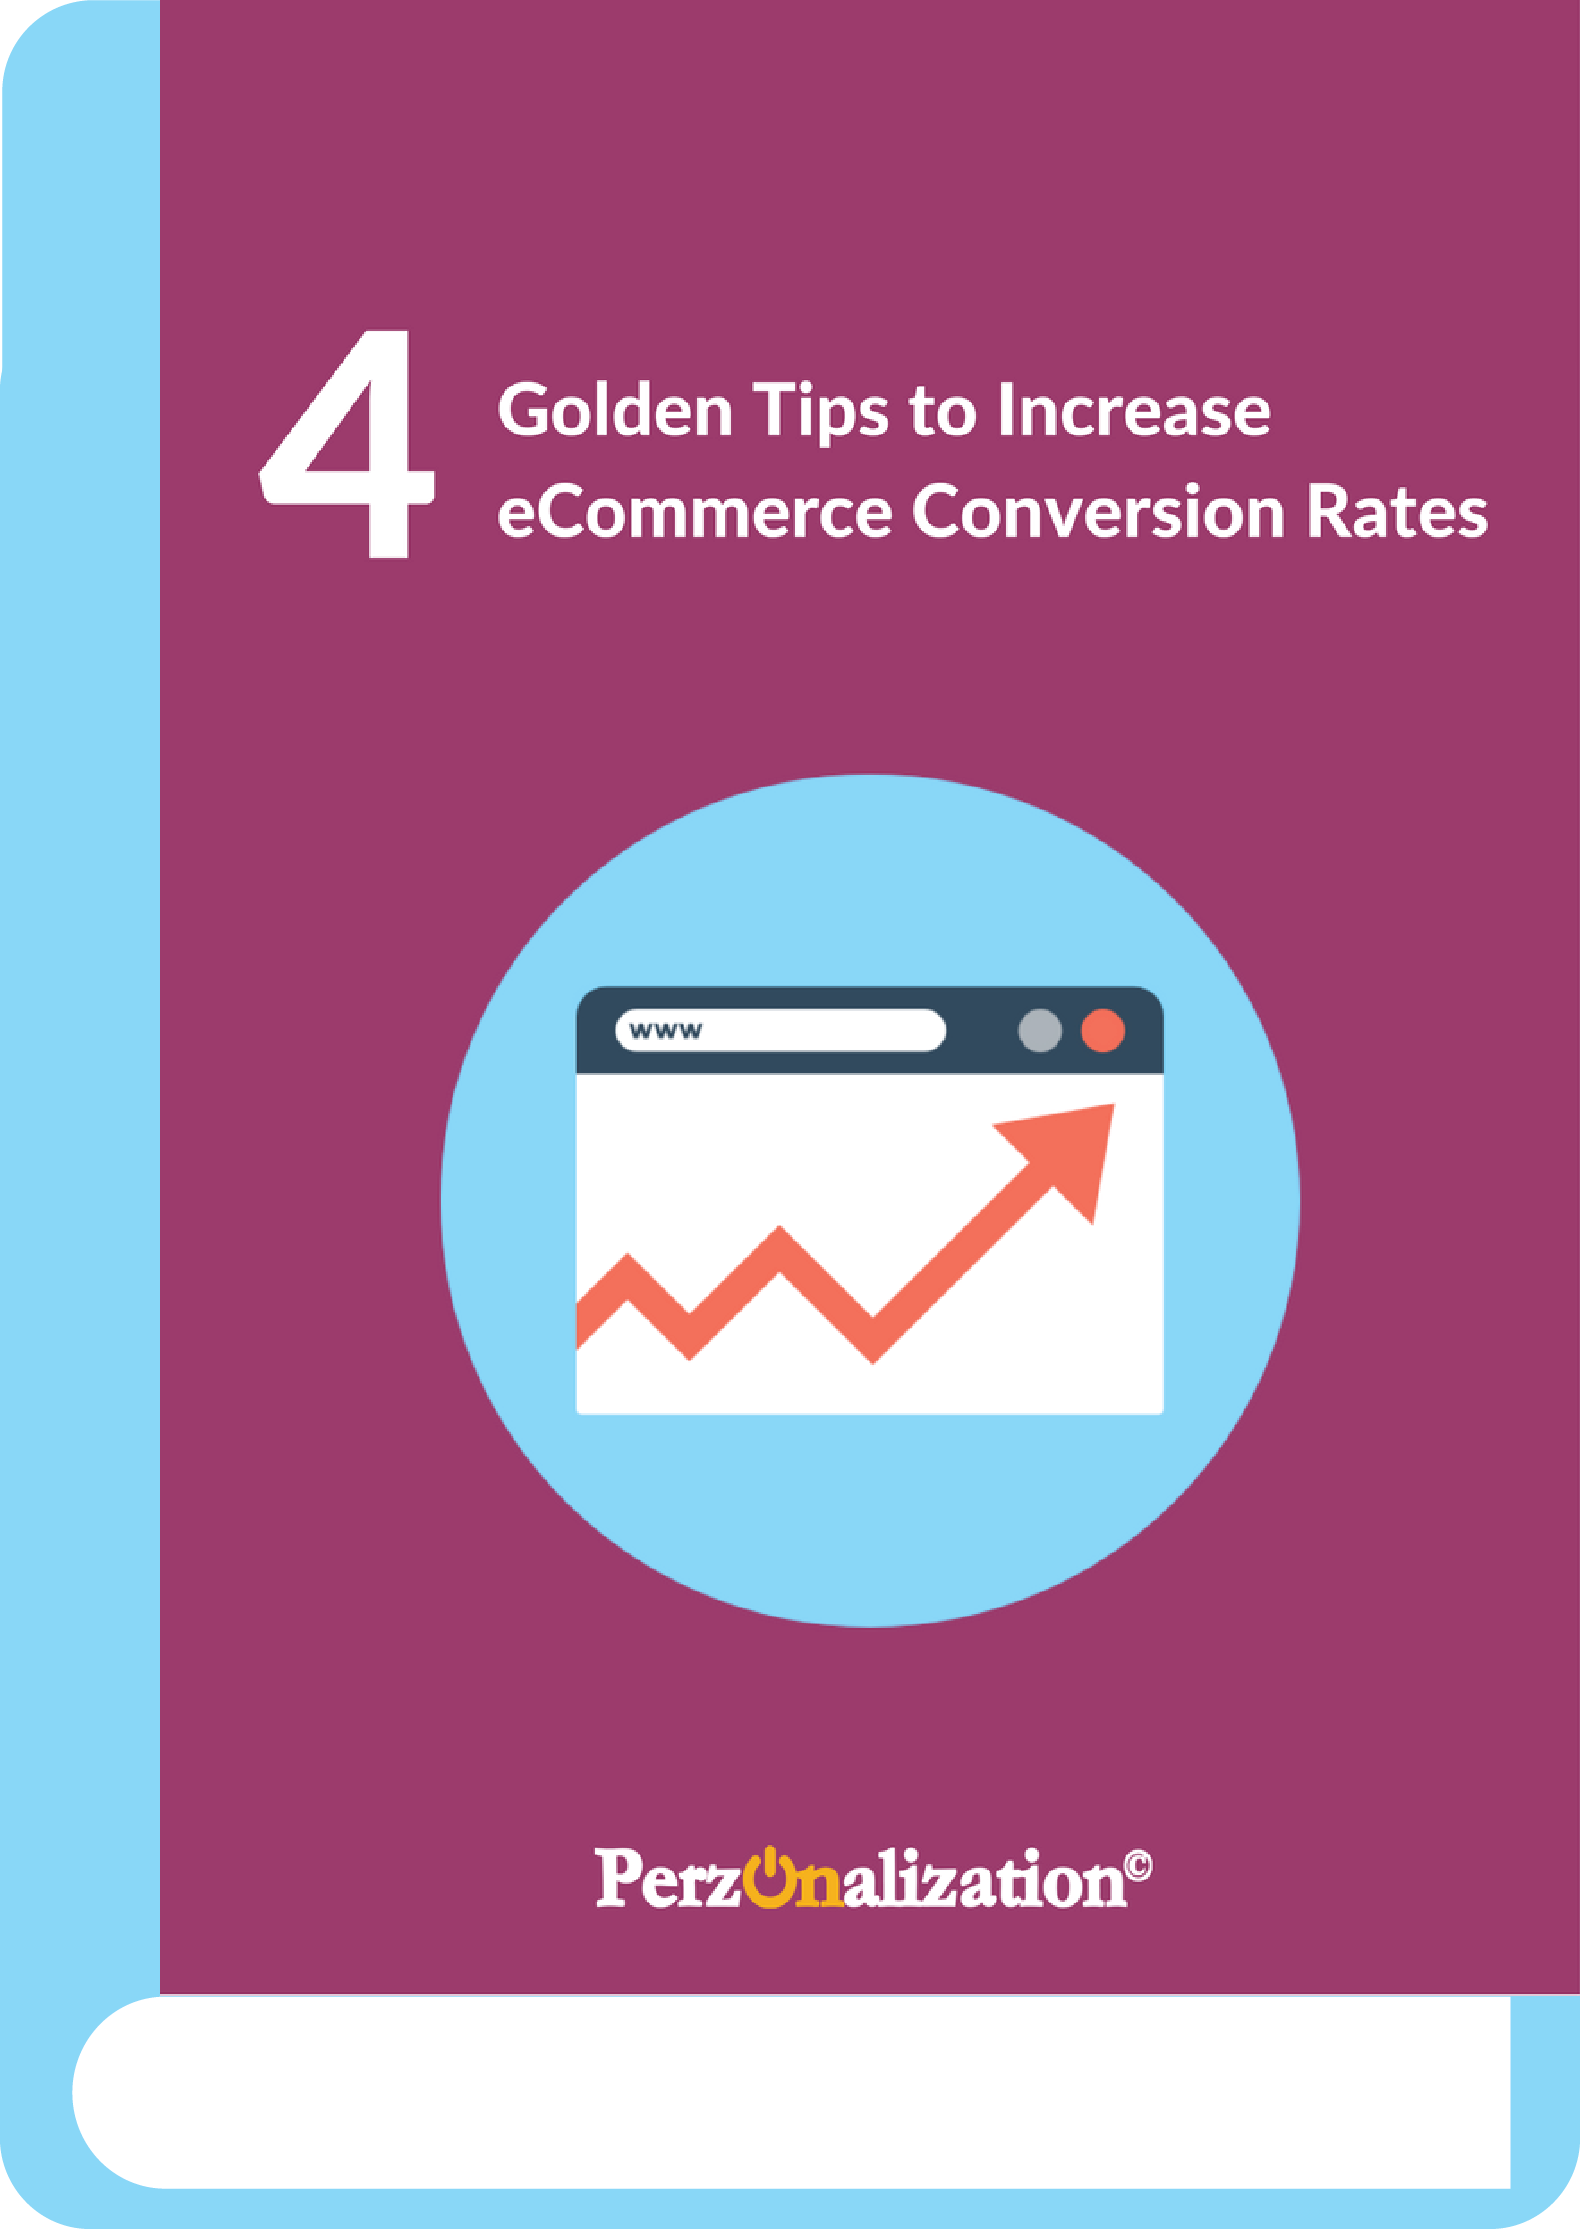 If you cannot increase conversion rate in eCommerce, then you're doomed. Find out tips and tricks on CRO and use them to increase conversions on your store.